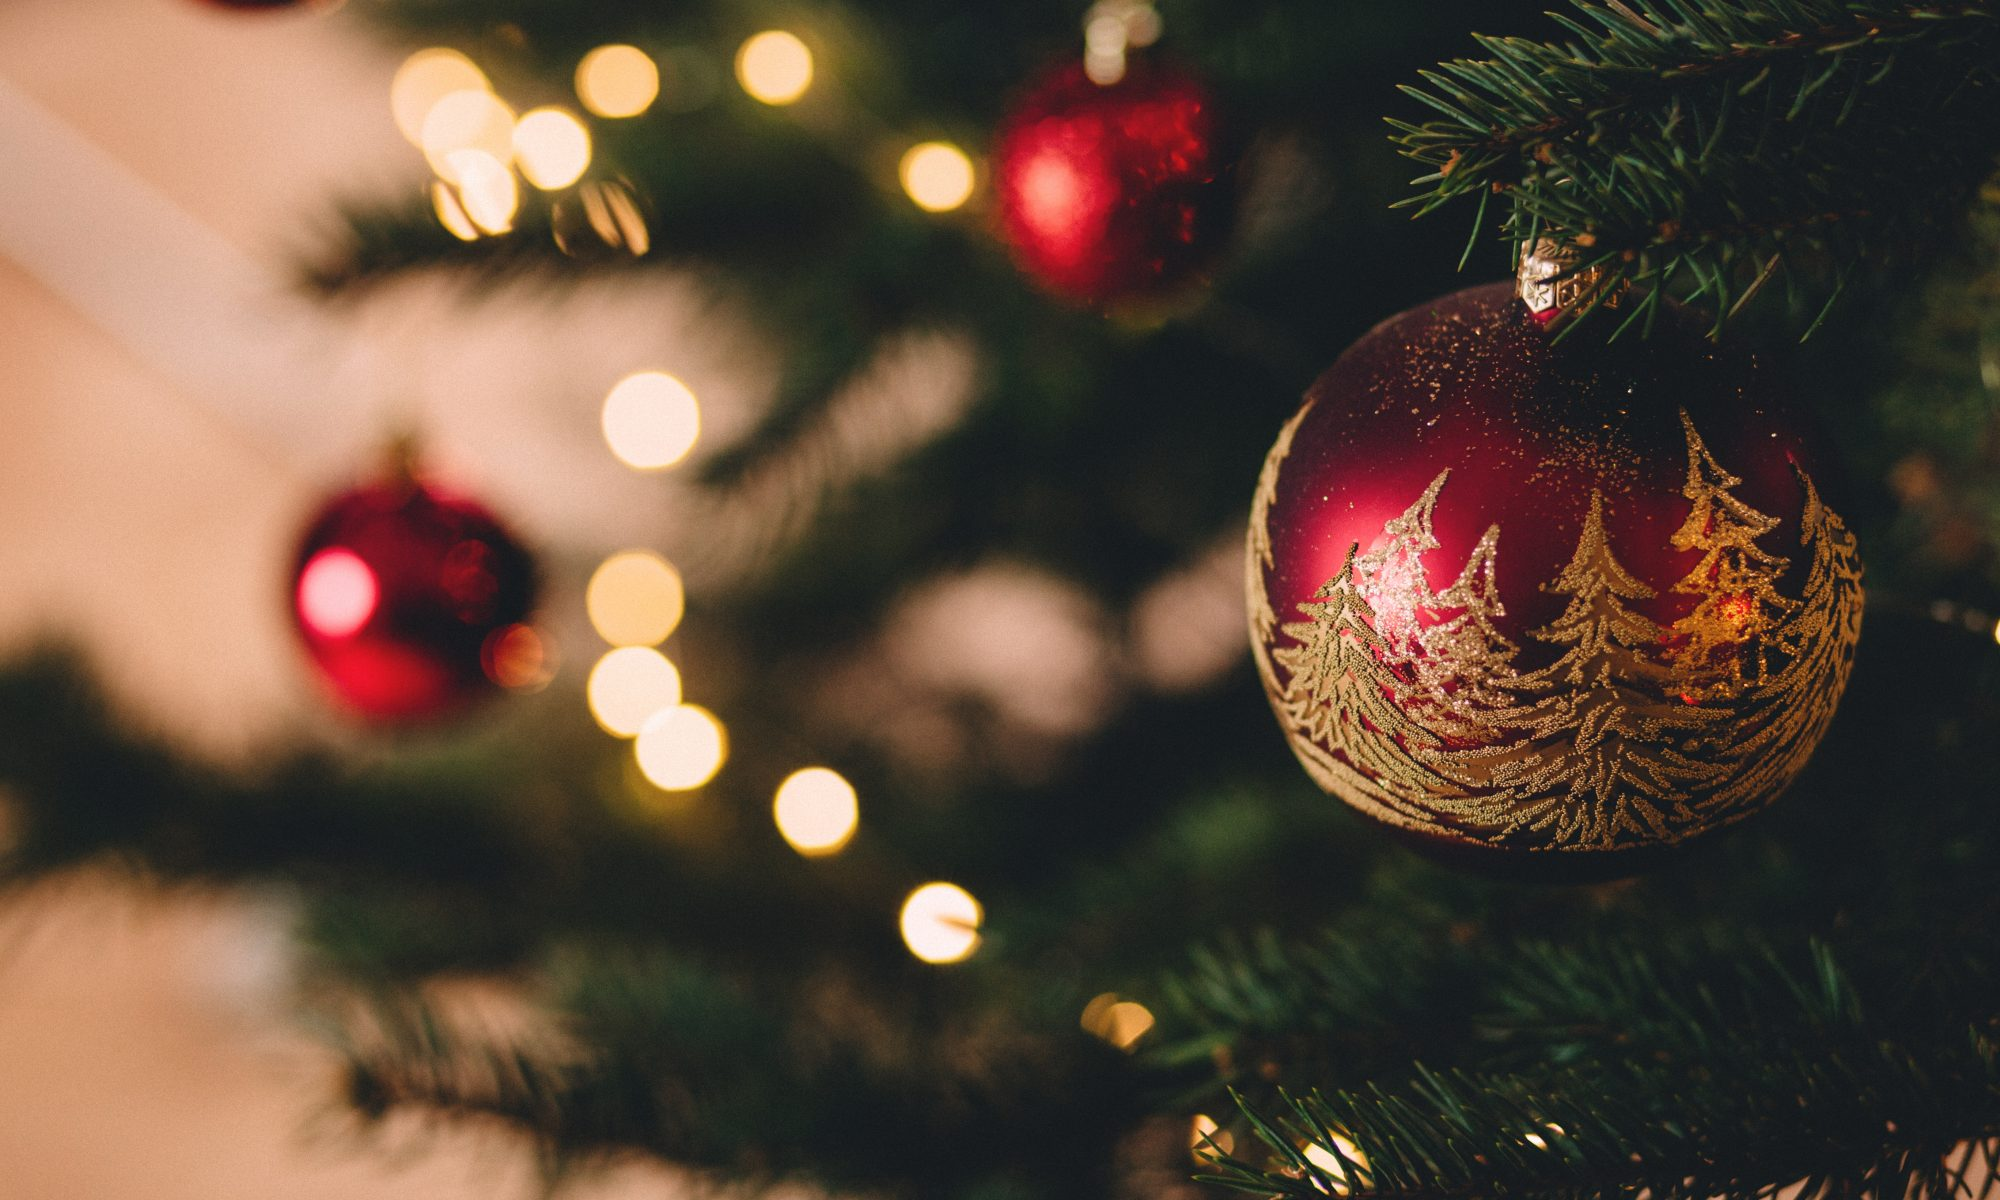 A bauble on a Christmas Tree